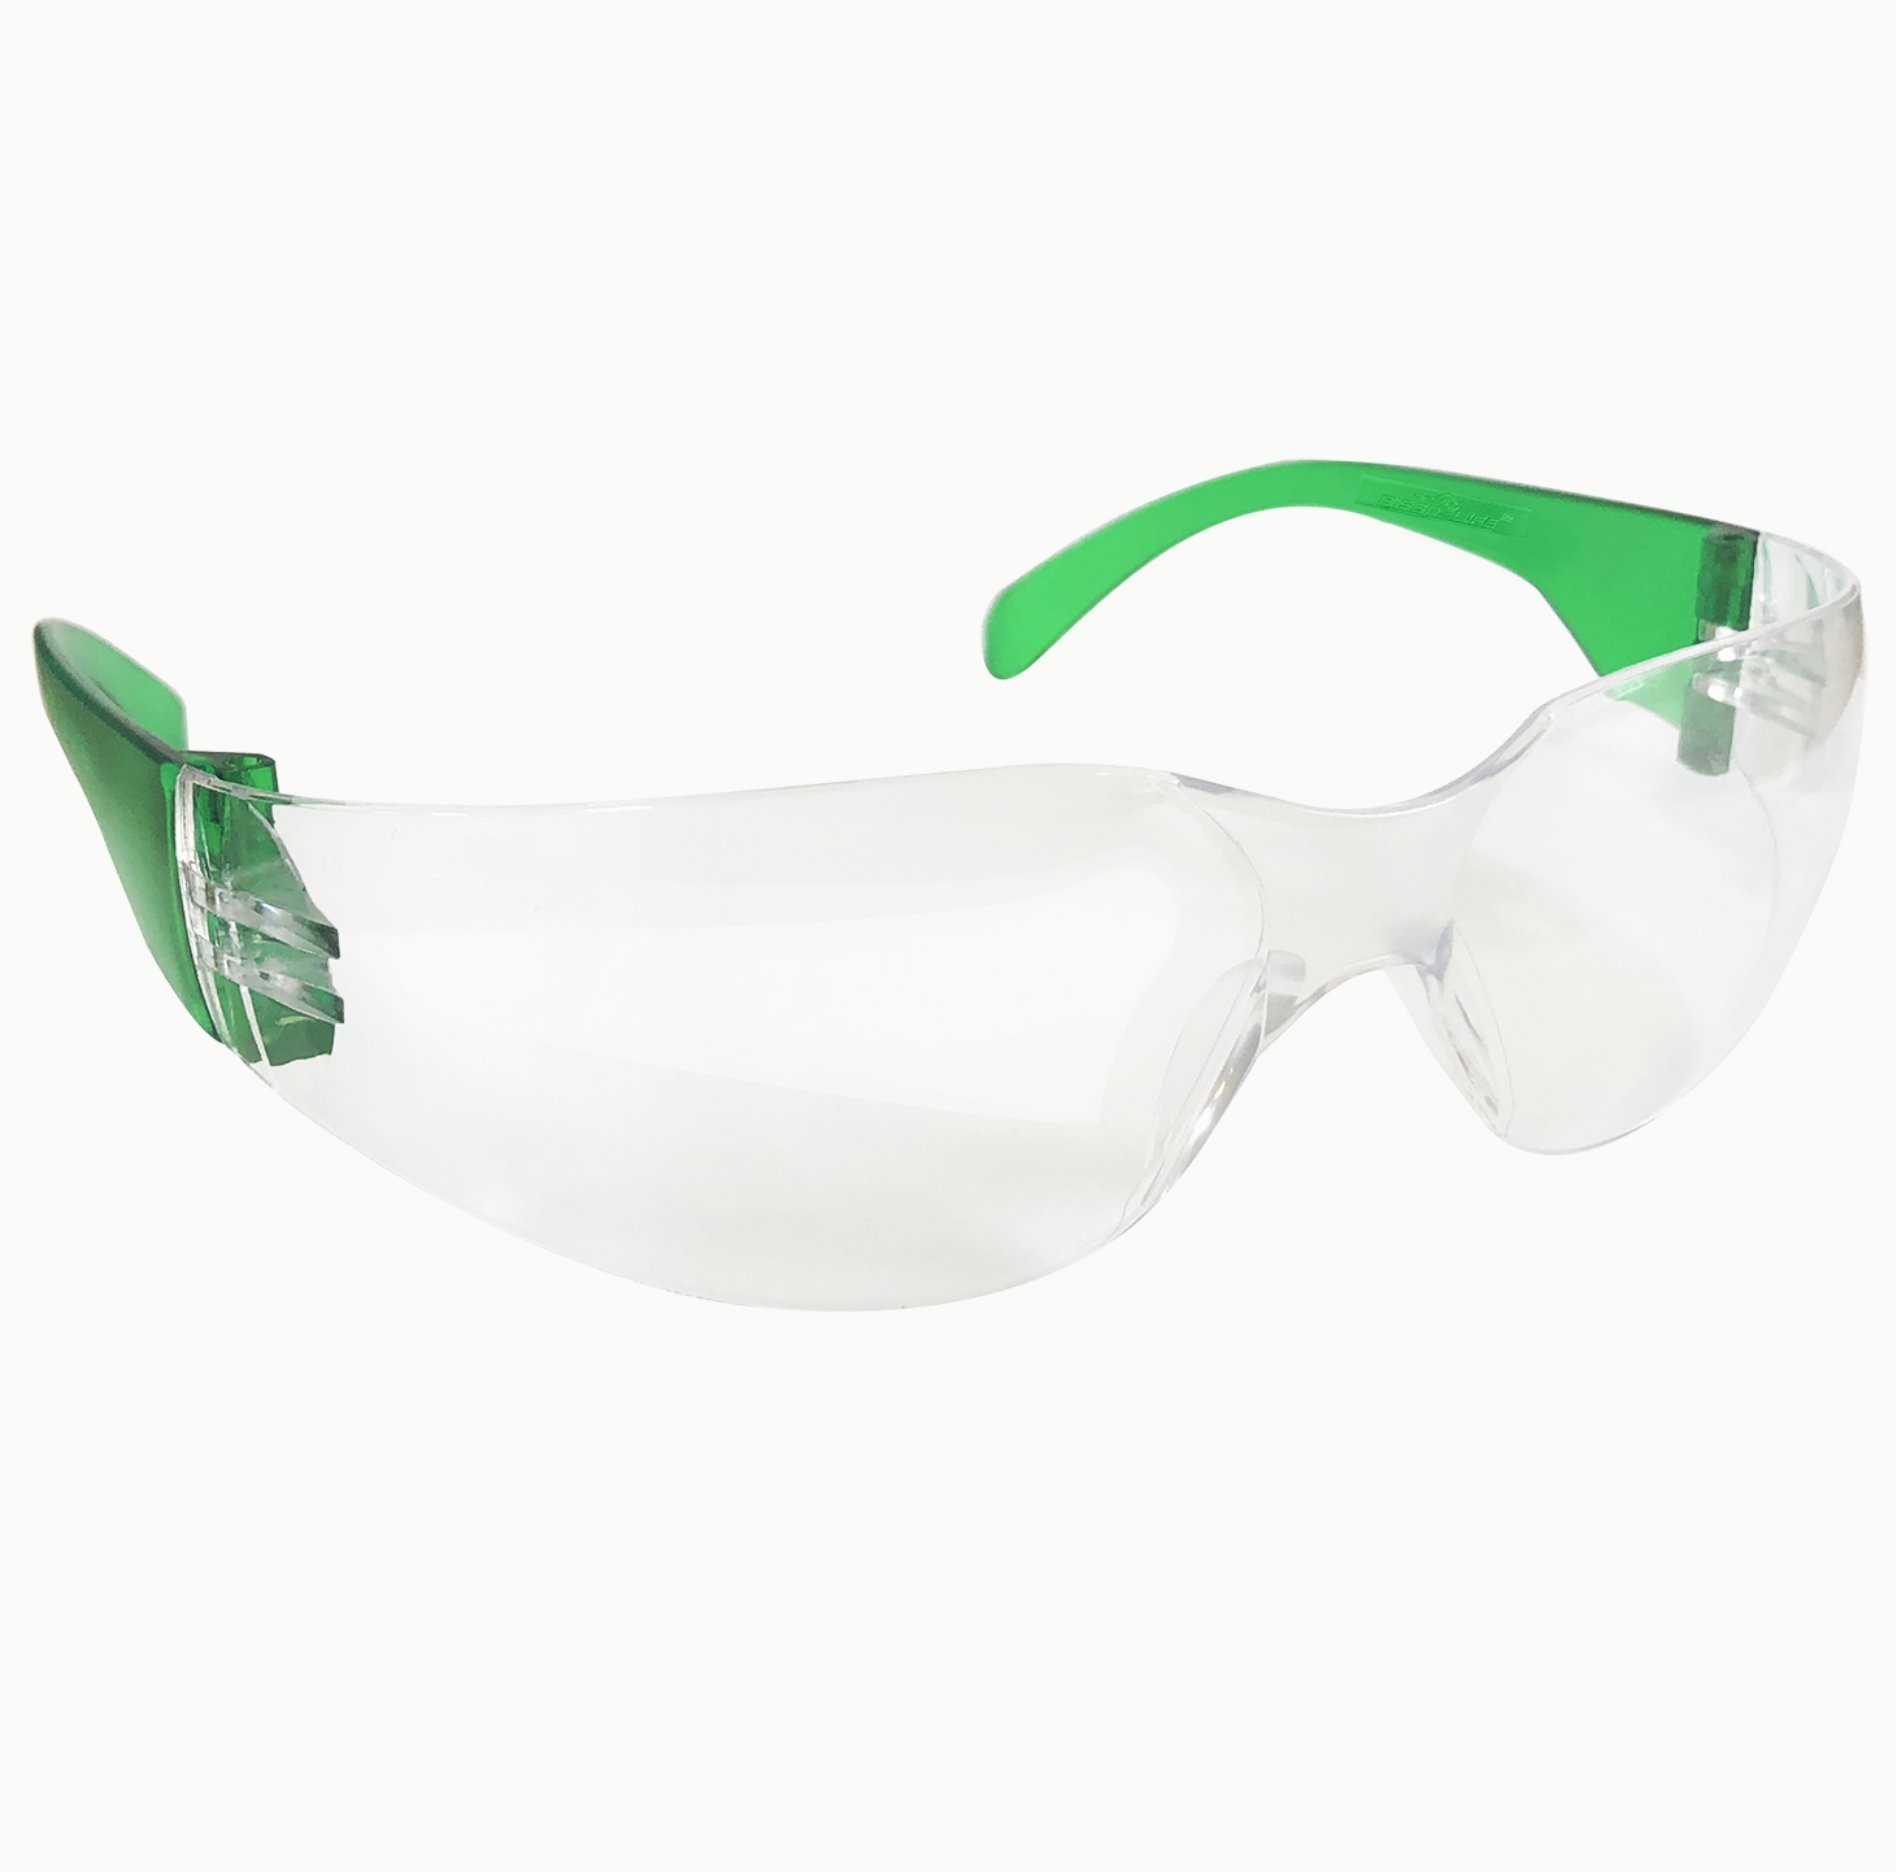 SAFE HANDLER Protective Safety Glasses, Clear Polycarbonate Impact and Ballistic Resistant Lens - Green Temple (Case of 12 Boxes, 144 Pairs Total) by Safe Handler (Image #2)